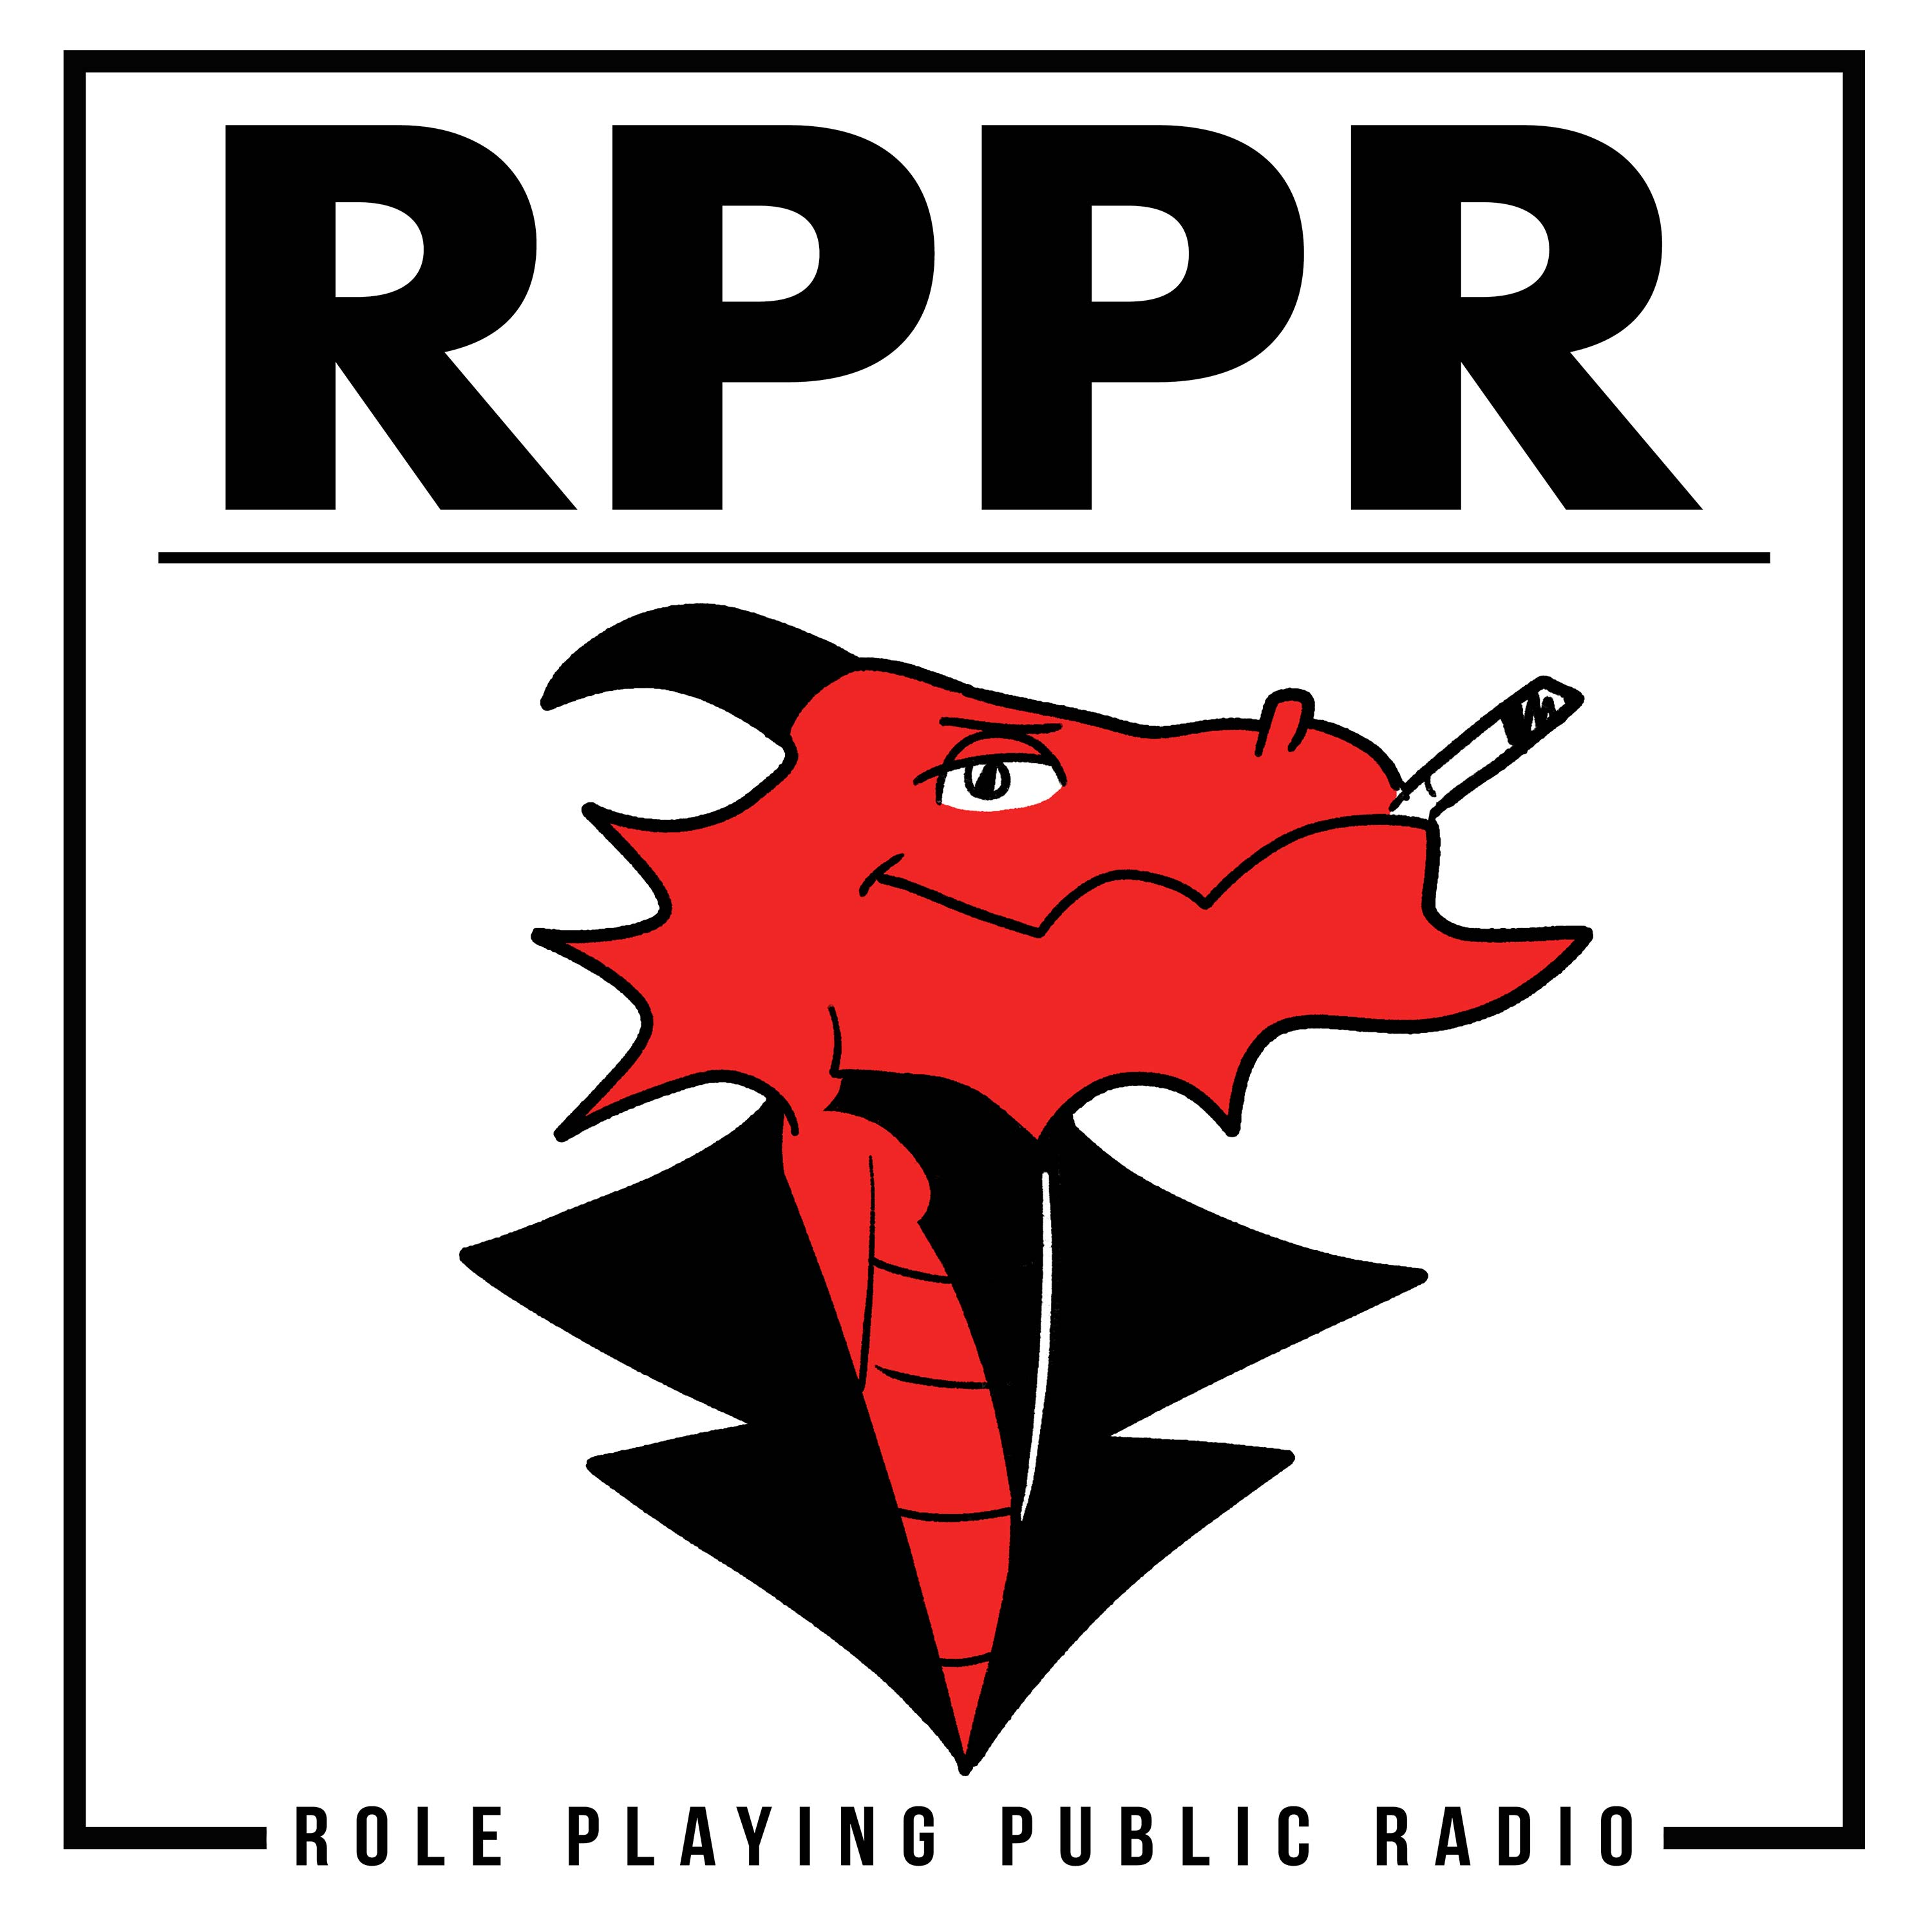 Role Playing Public Radio